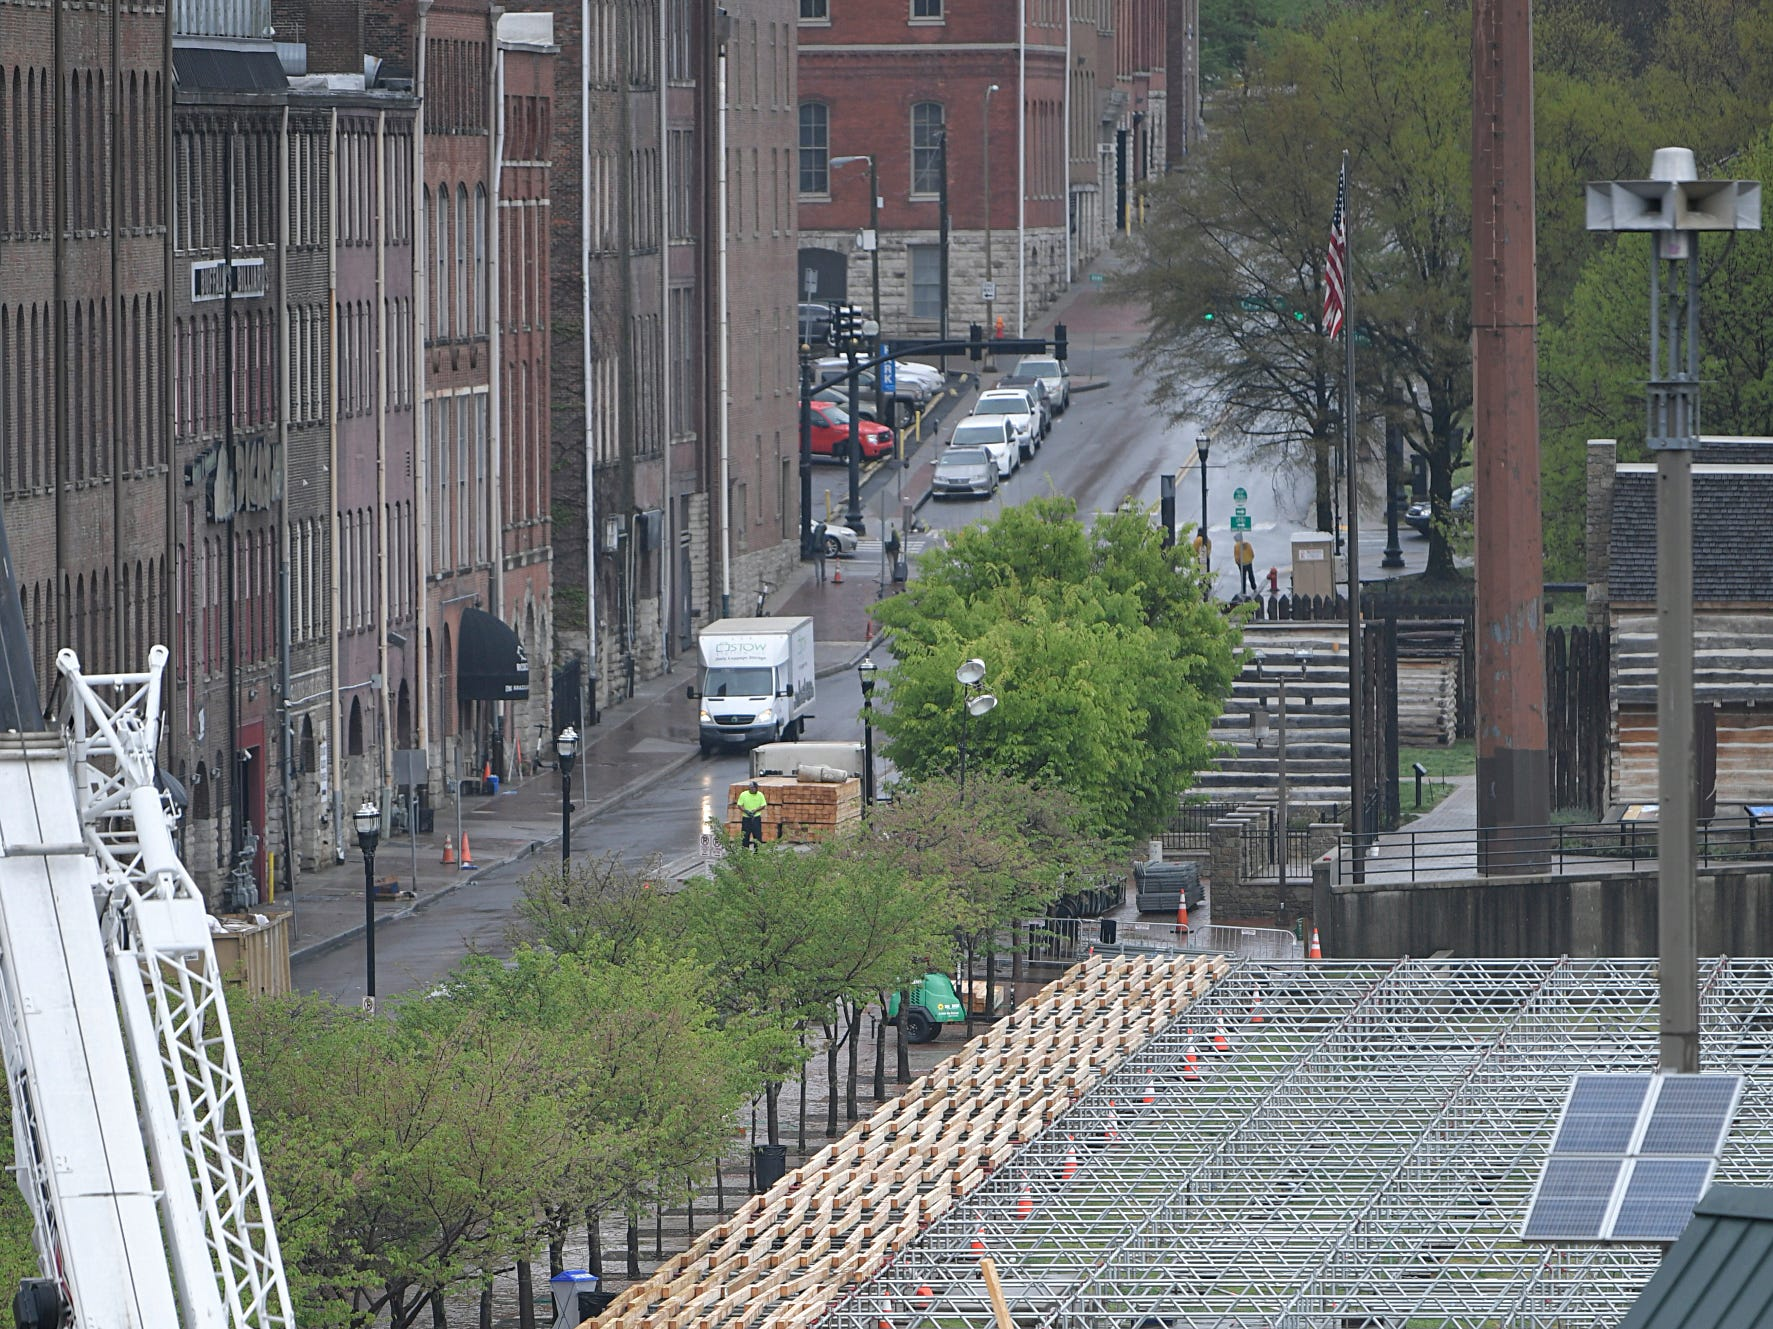 Construction has started on NFL Draft stage on 1st Ave in downtown Nashville on Monday, April 8, 2019.